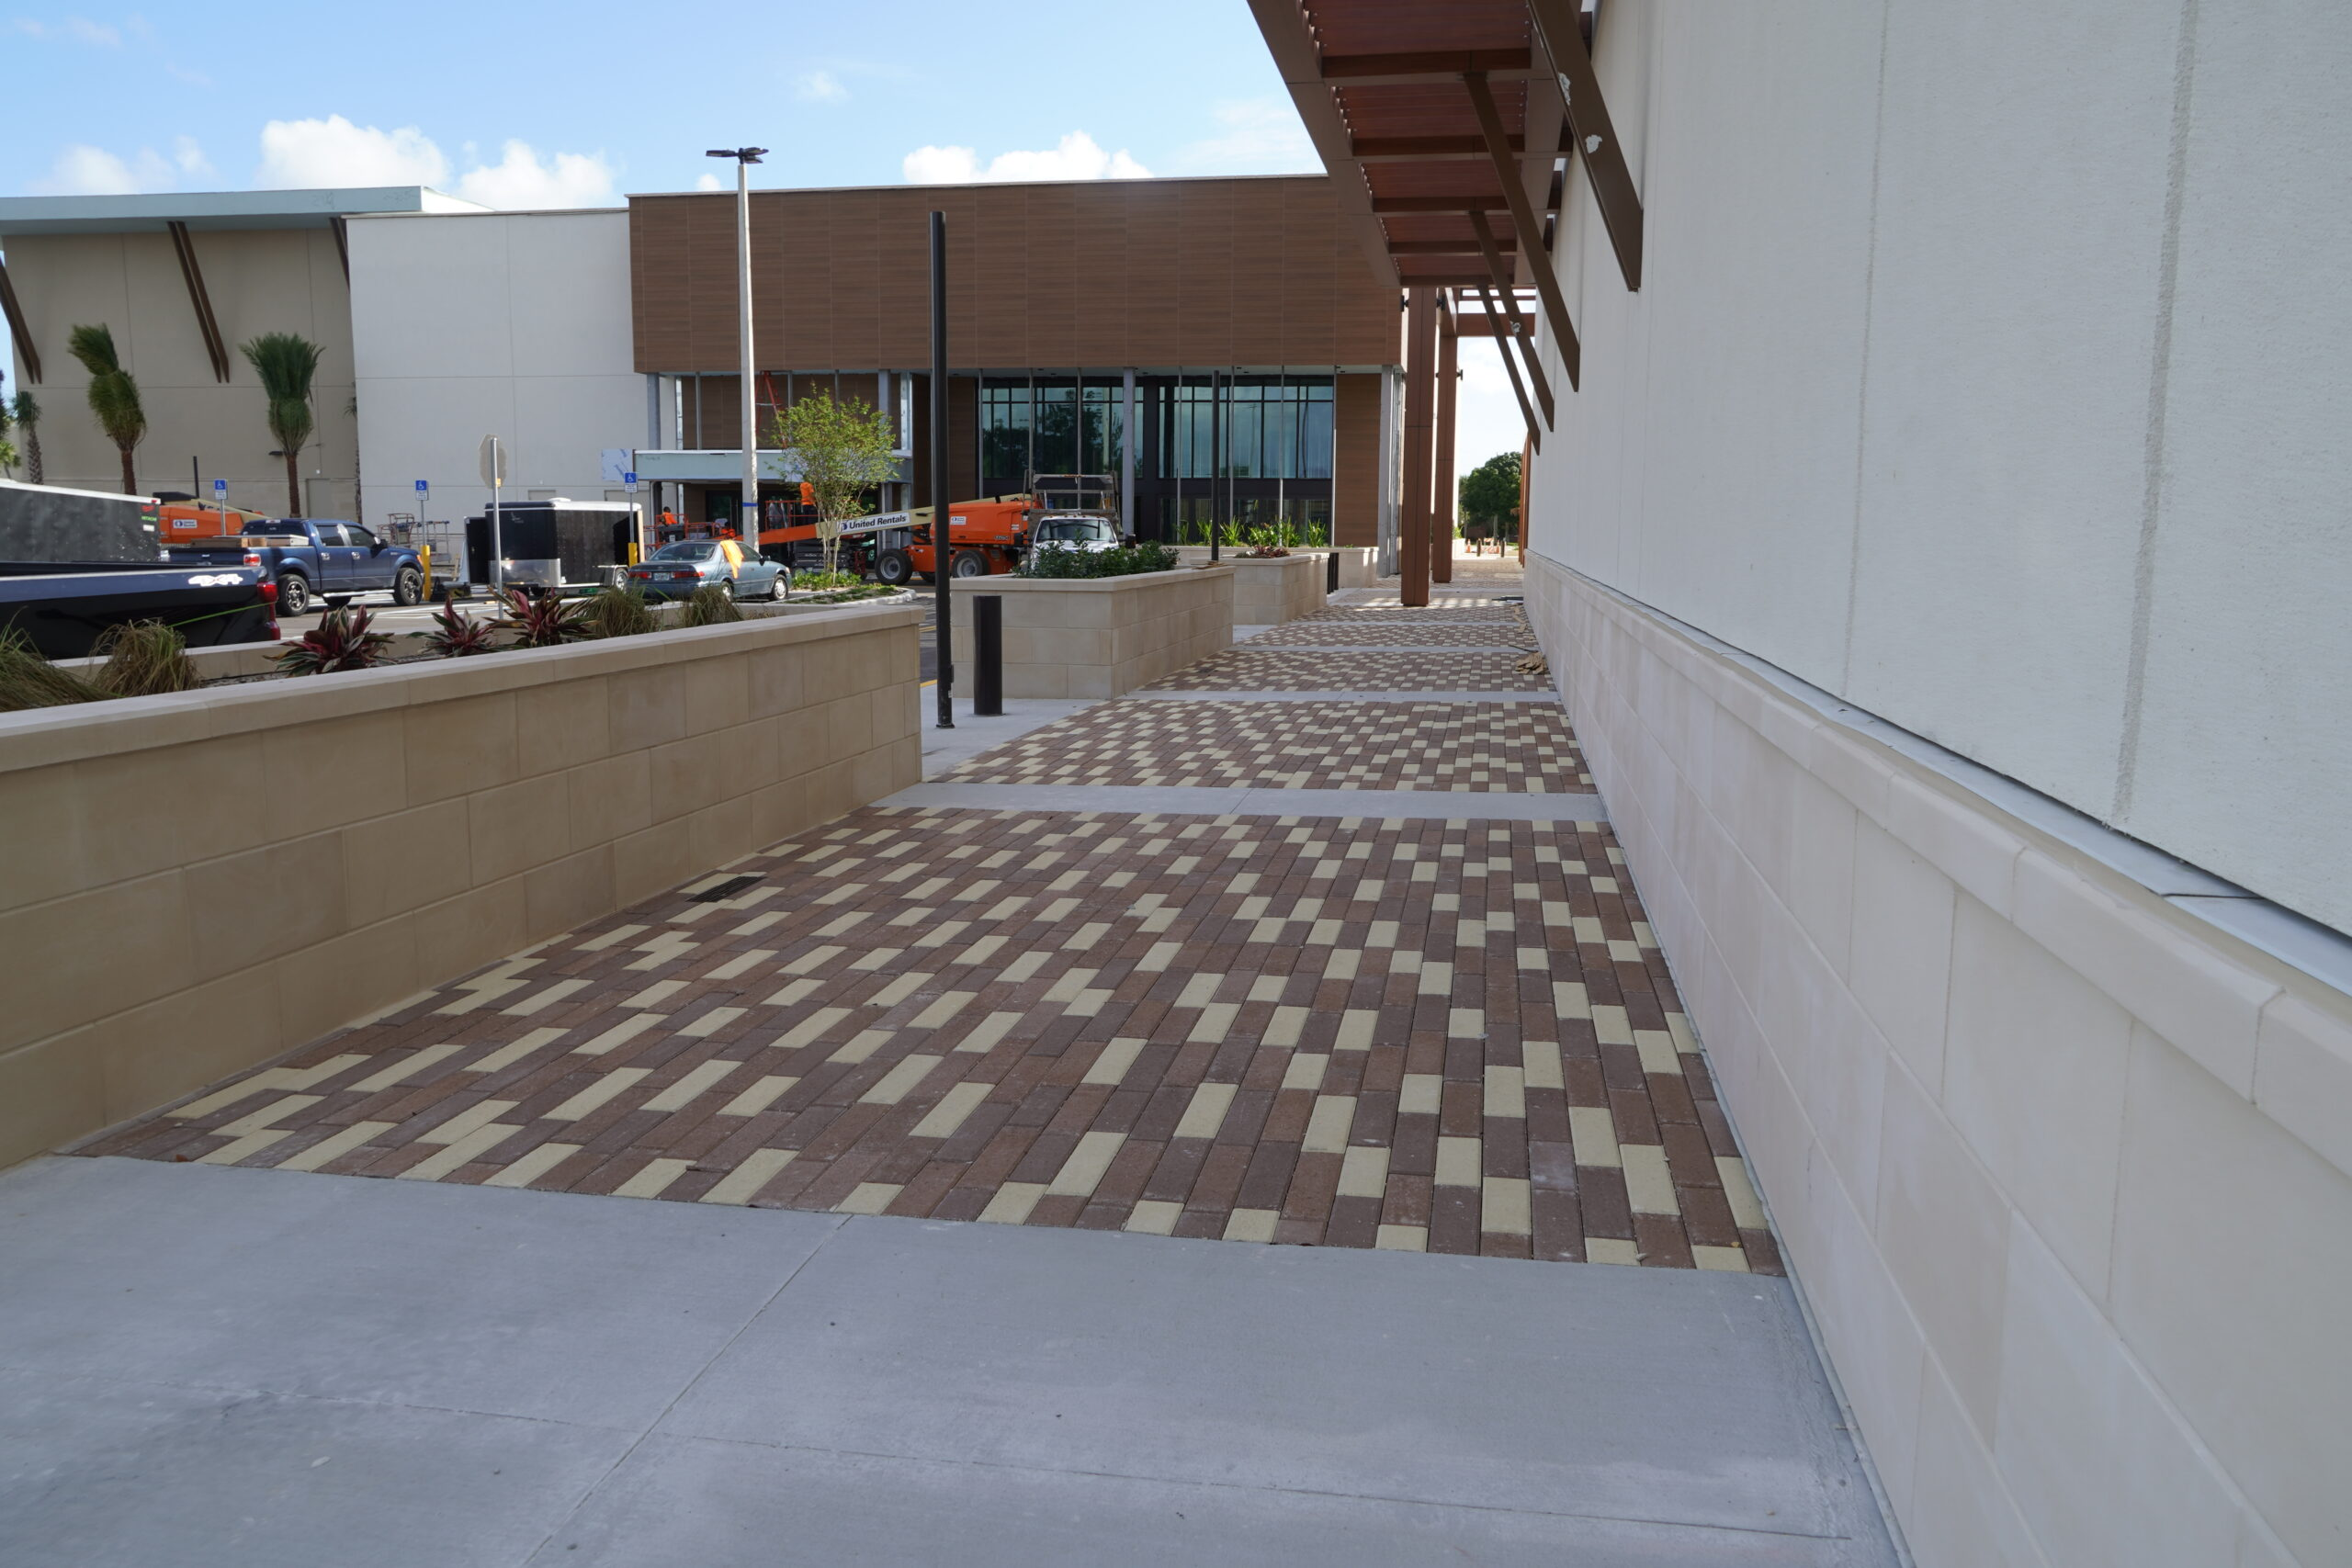 Coastland Town Center Commercial Paver Installations